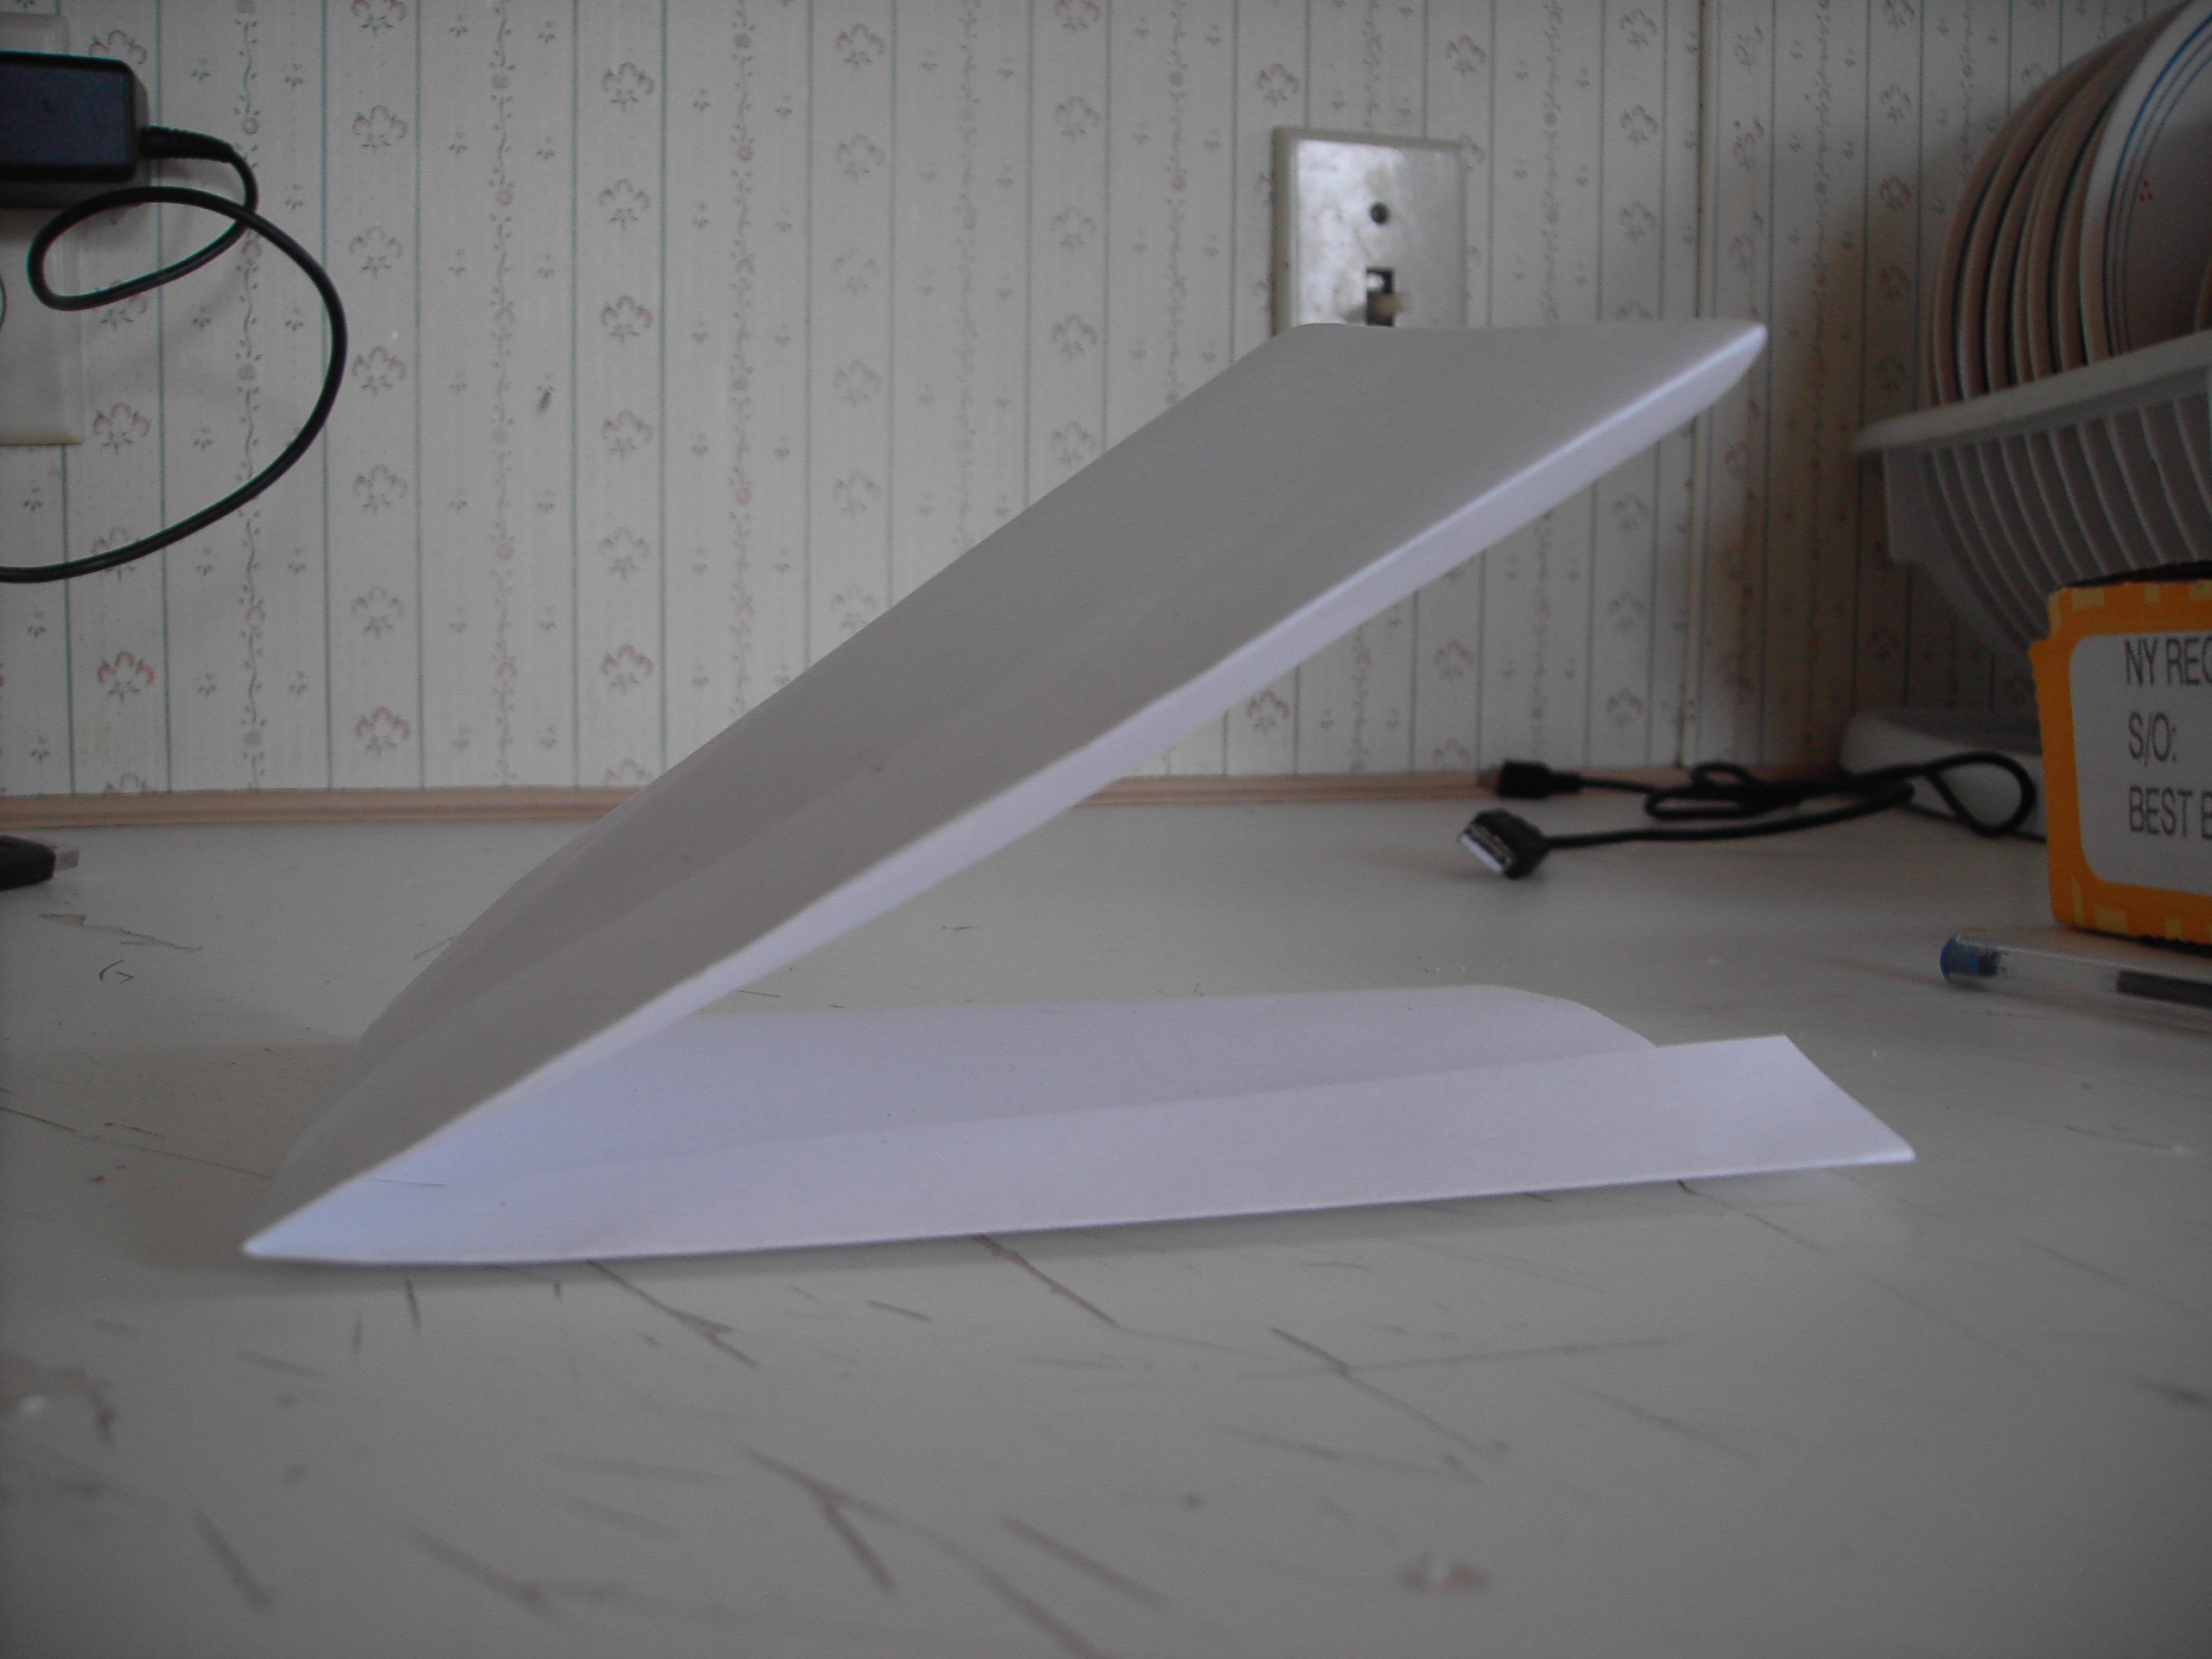 Picture of How to Make a Paper Popper (EASY)